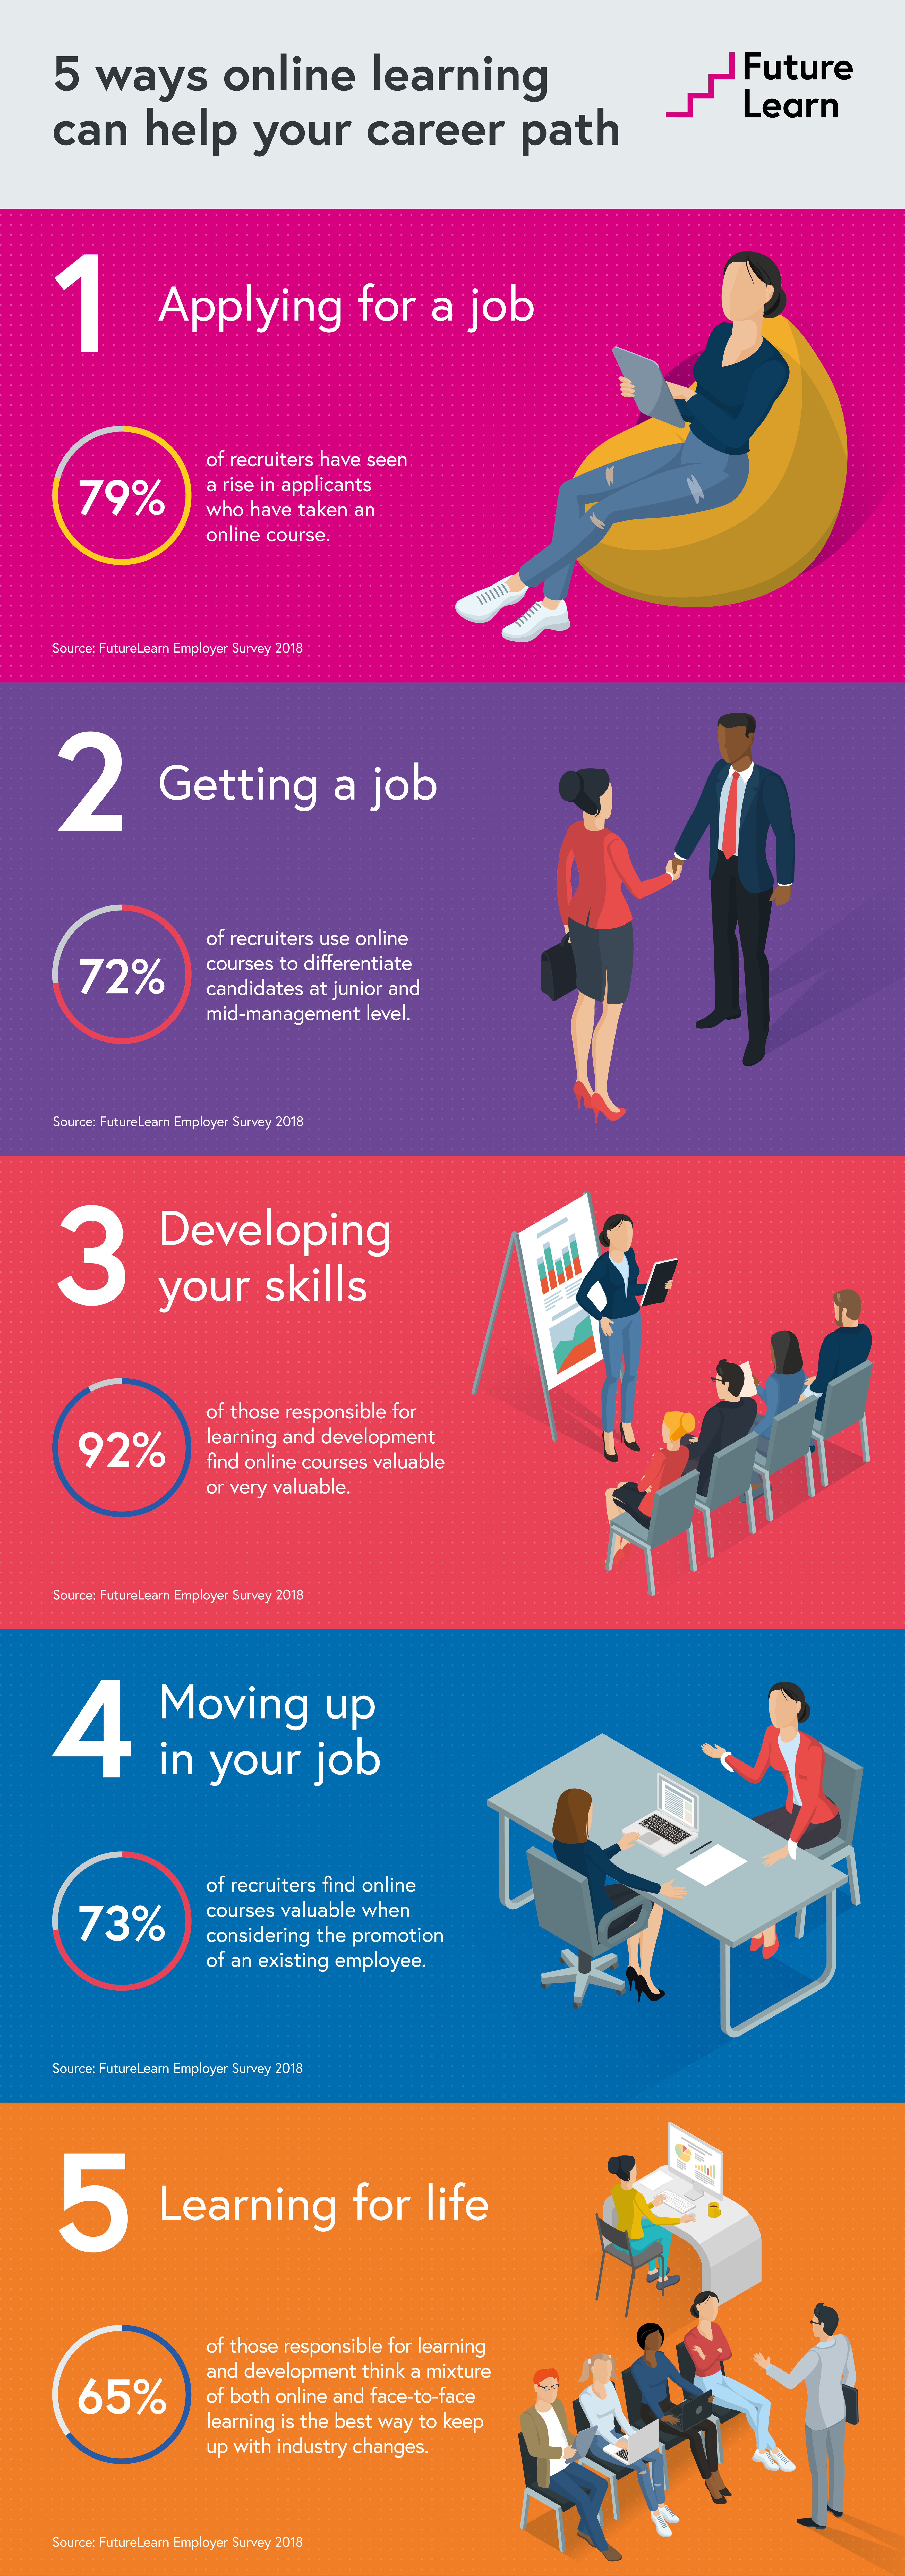 Infographic depicting five ways online learning can help your career path